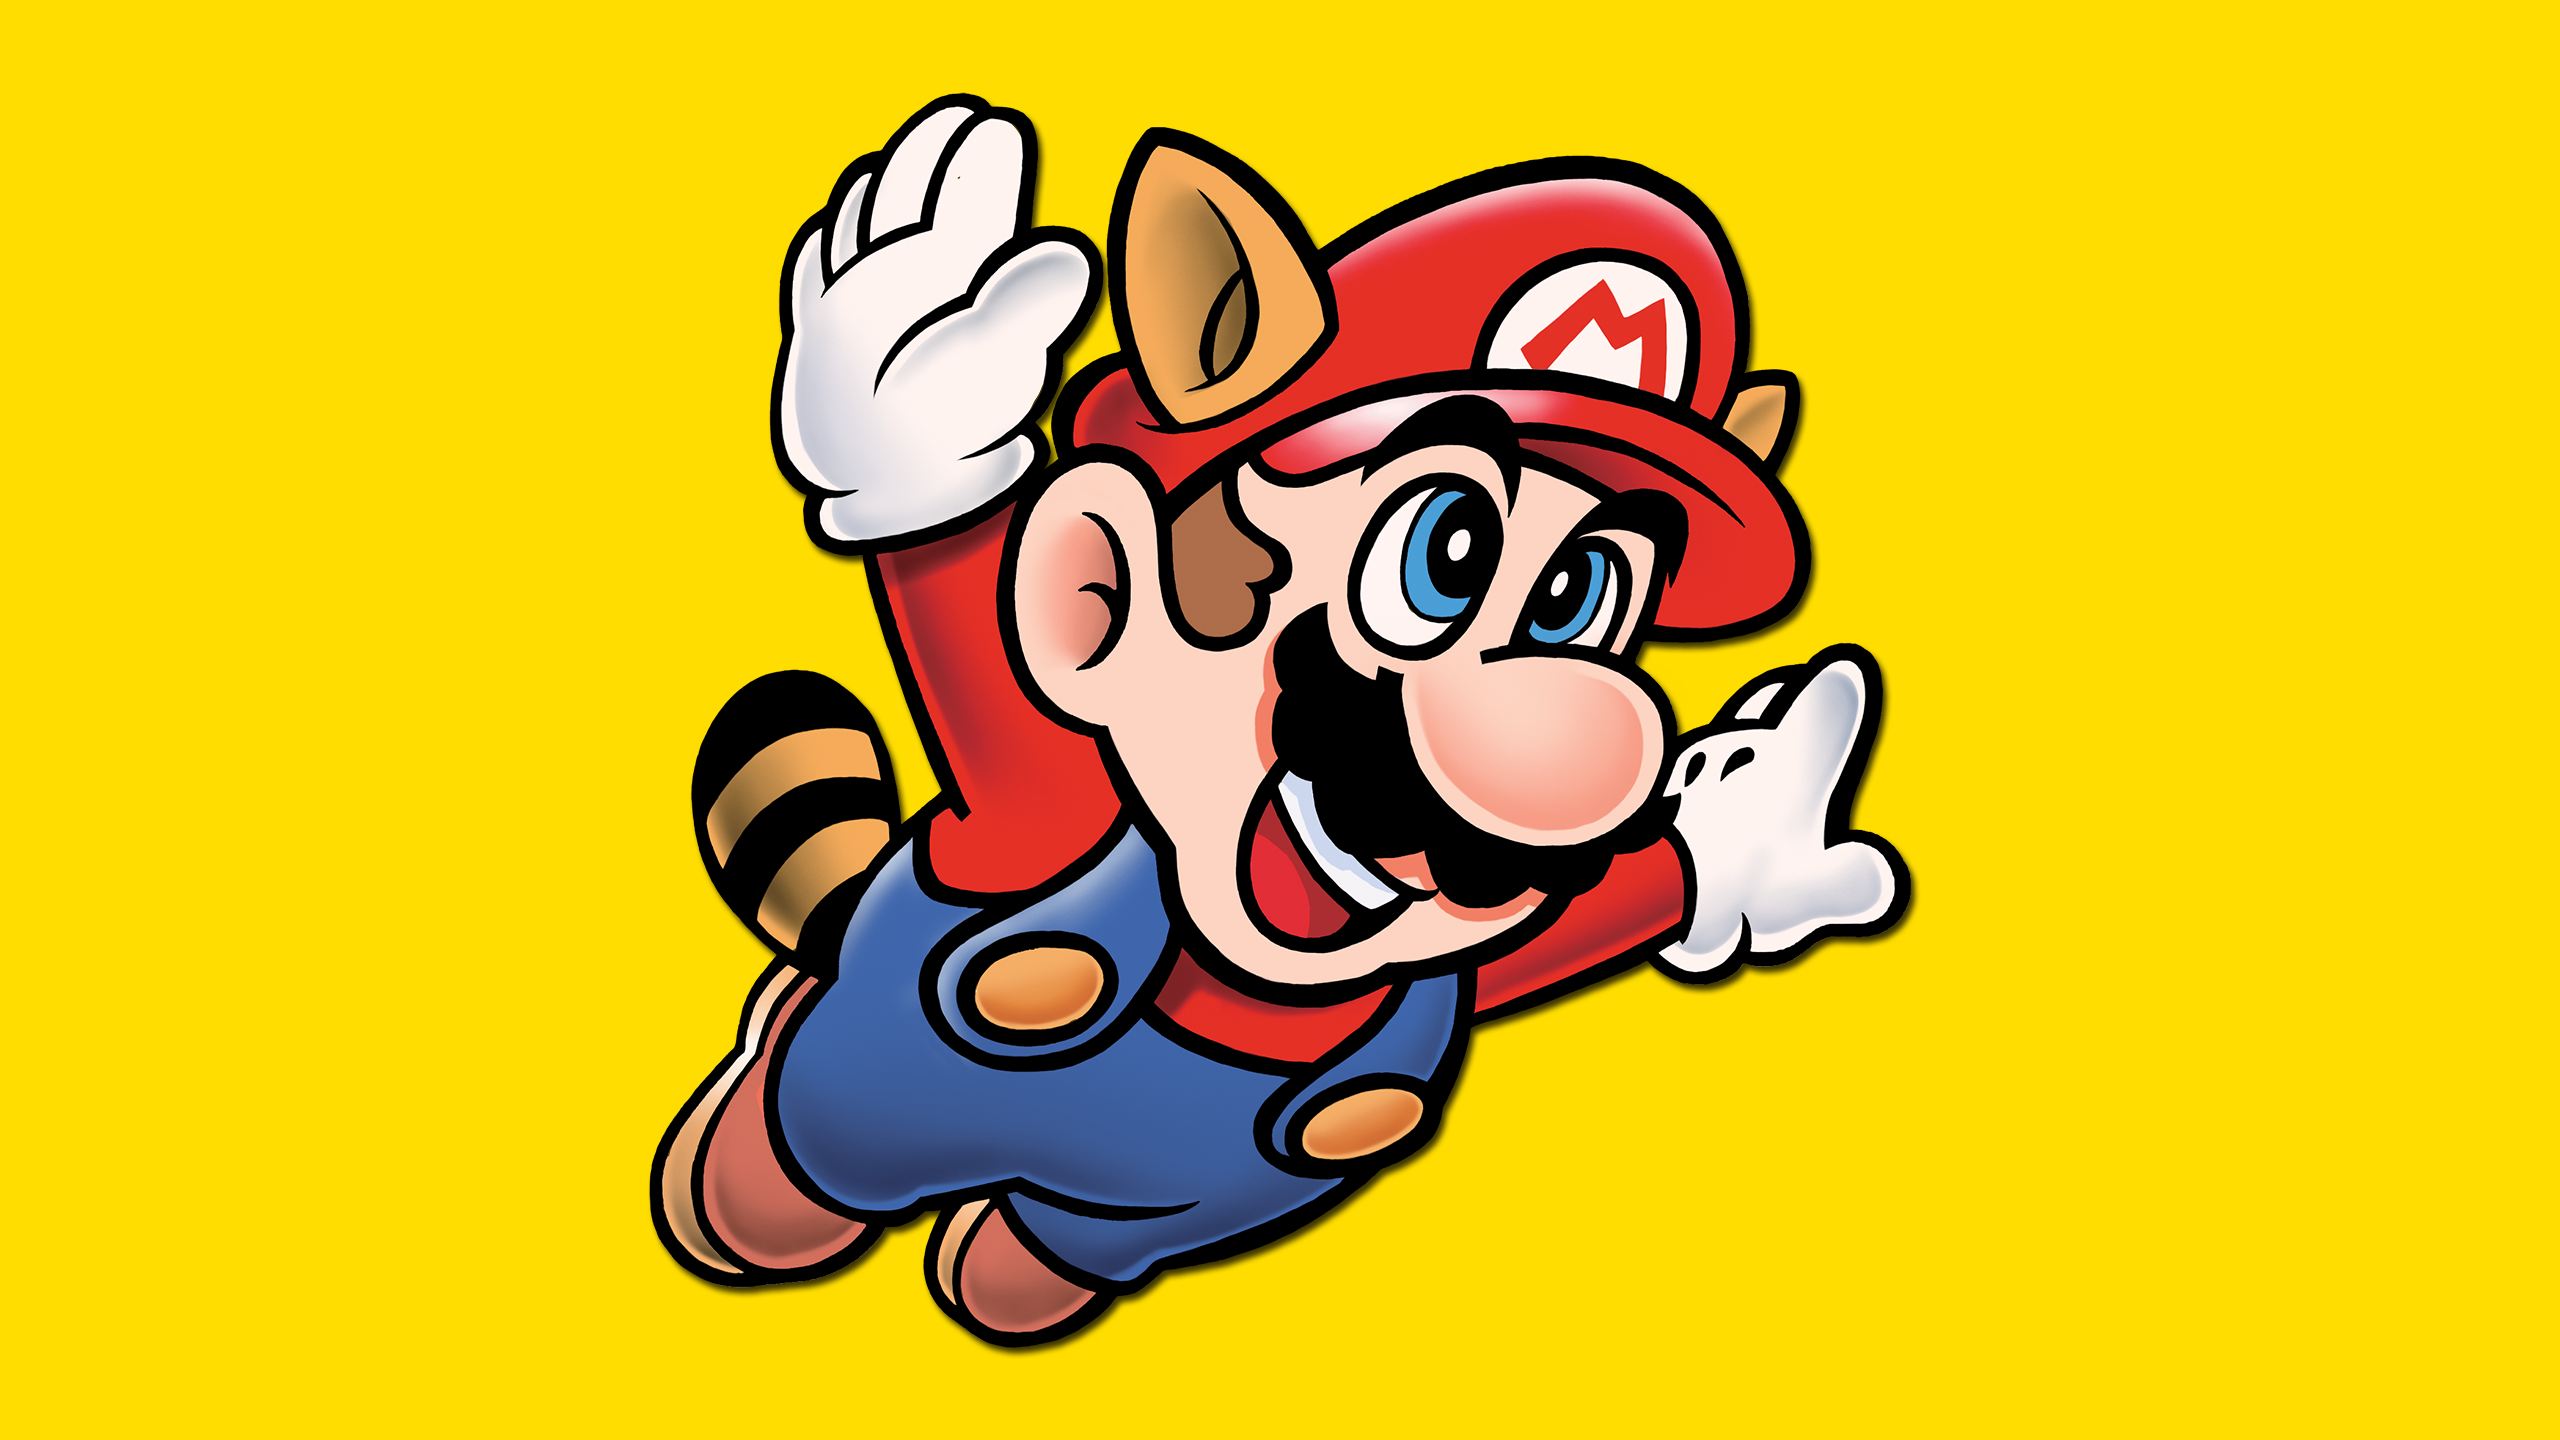 Super Mario 3 Wallpaper Posted By Ethan Walker